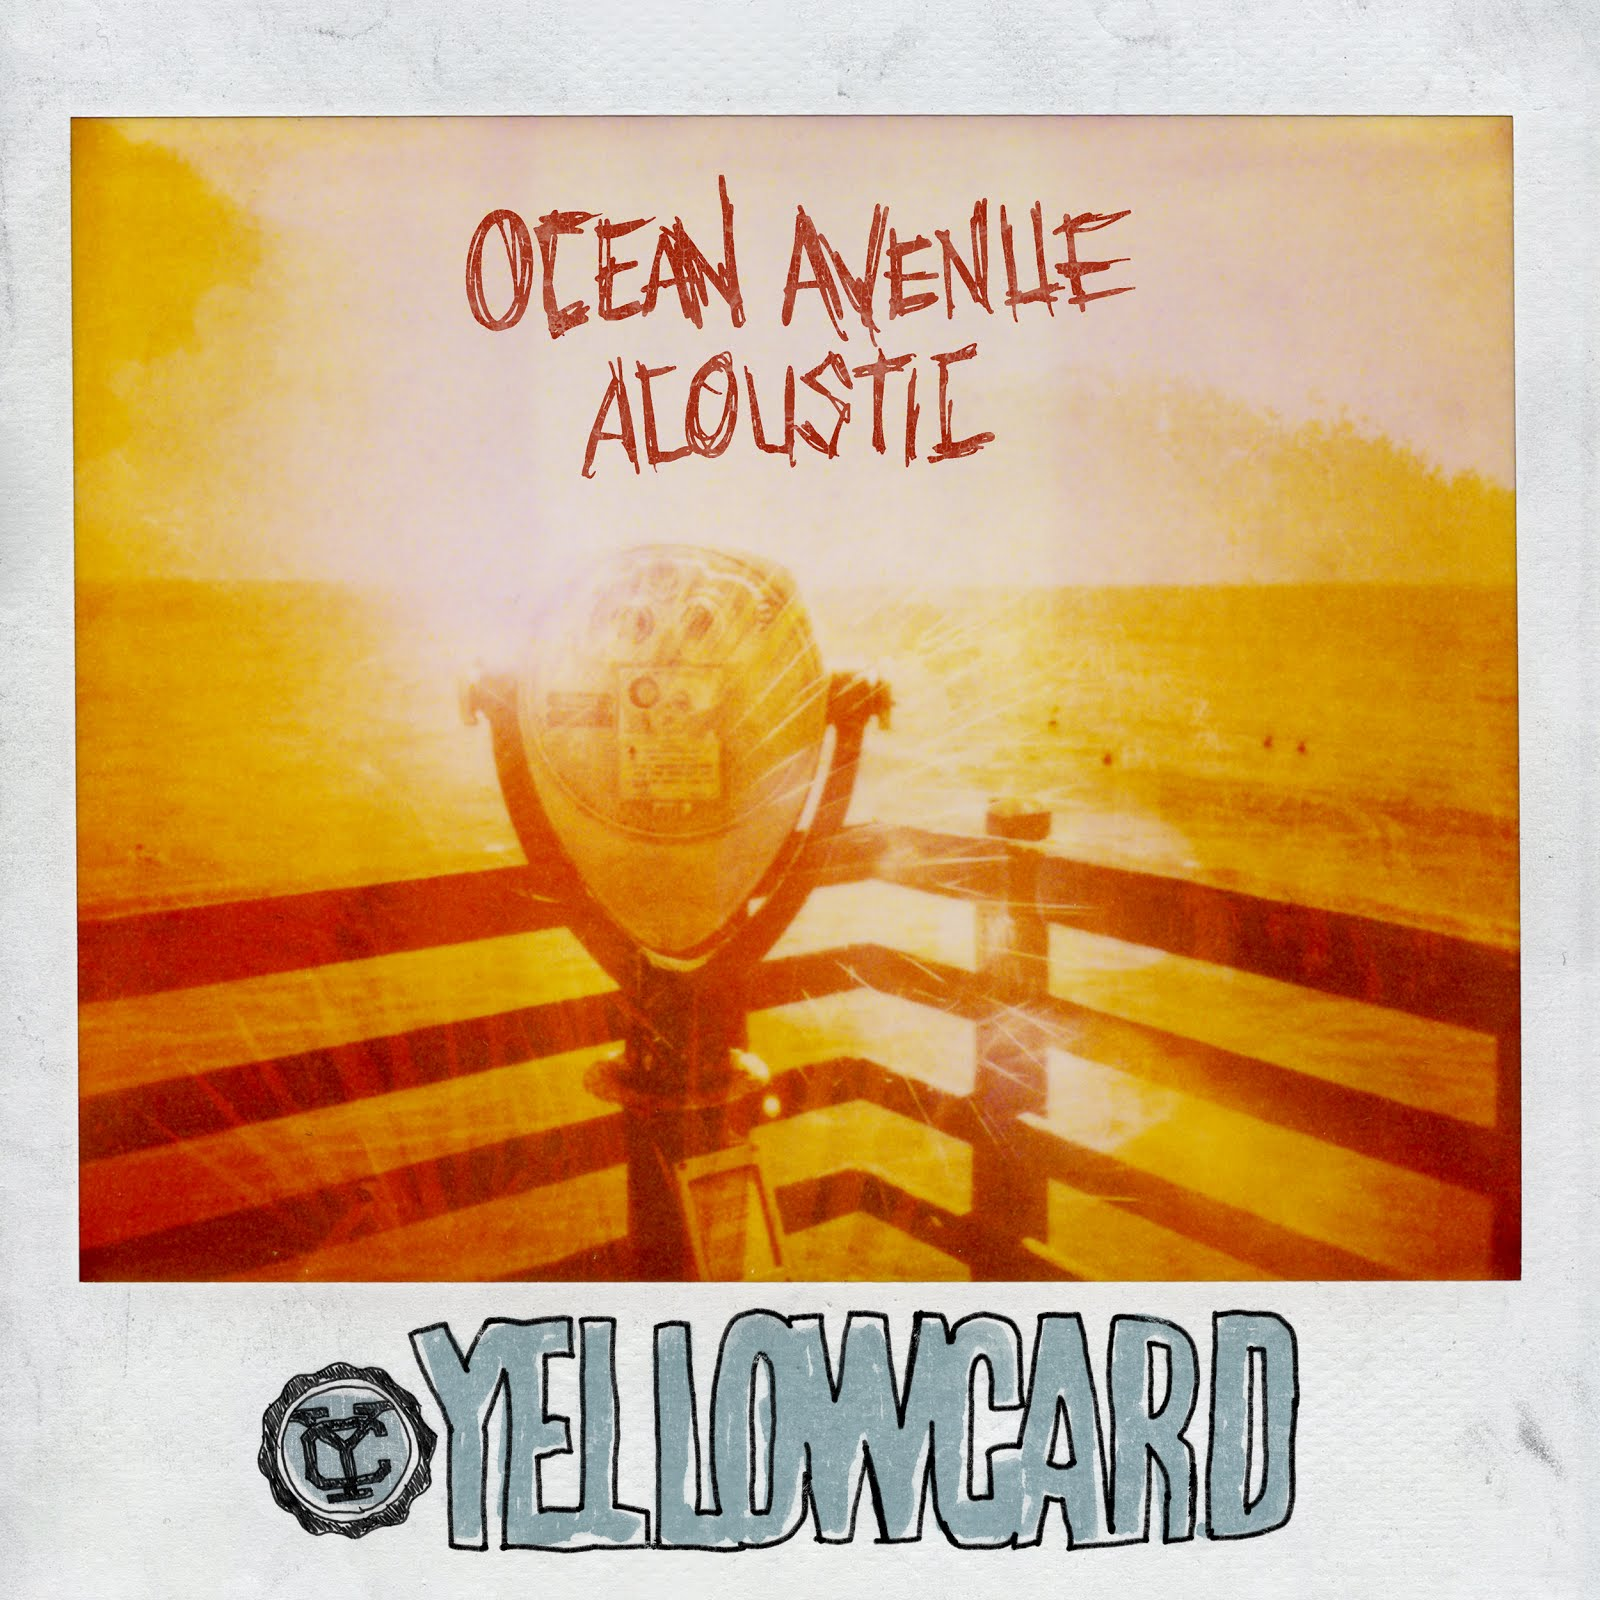 YELLOWCARD announce Ocean Avenue Acoustic, The Tour with special guest Toy Boats